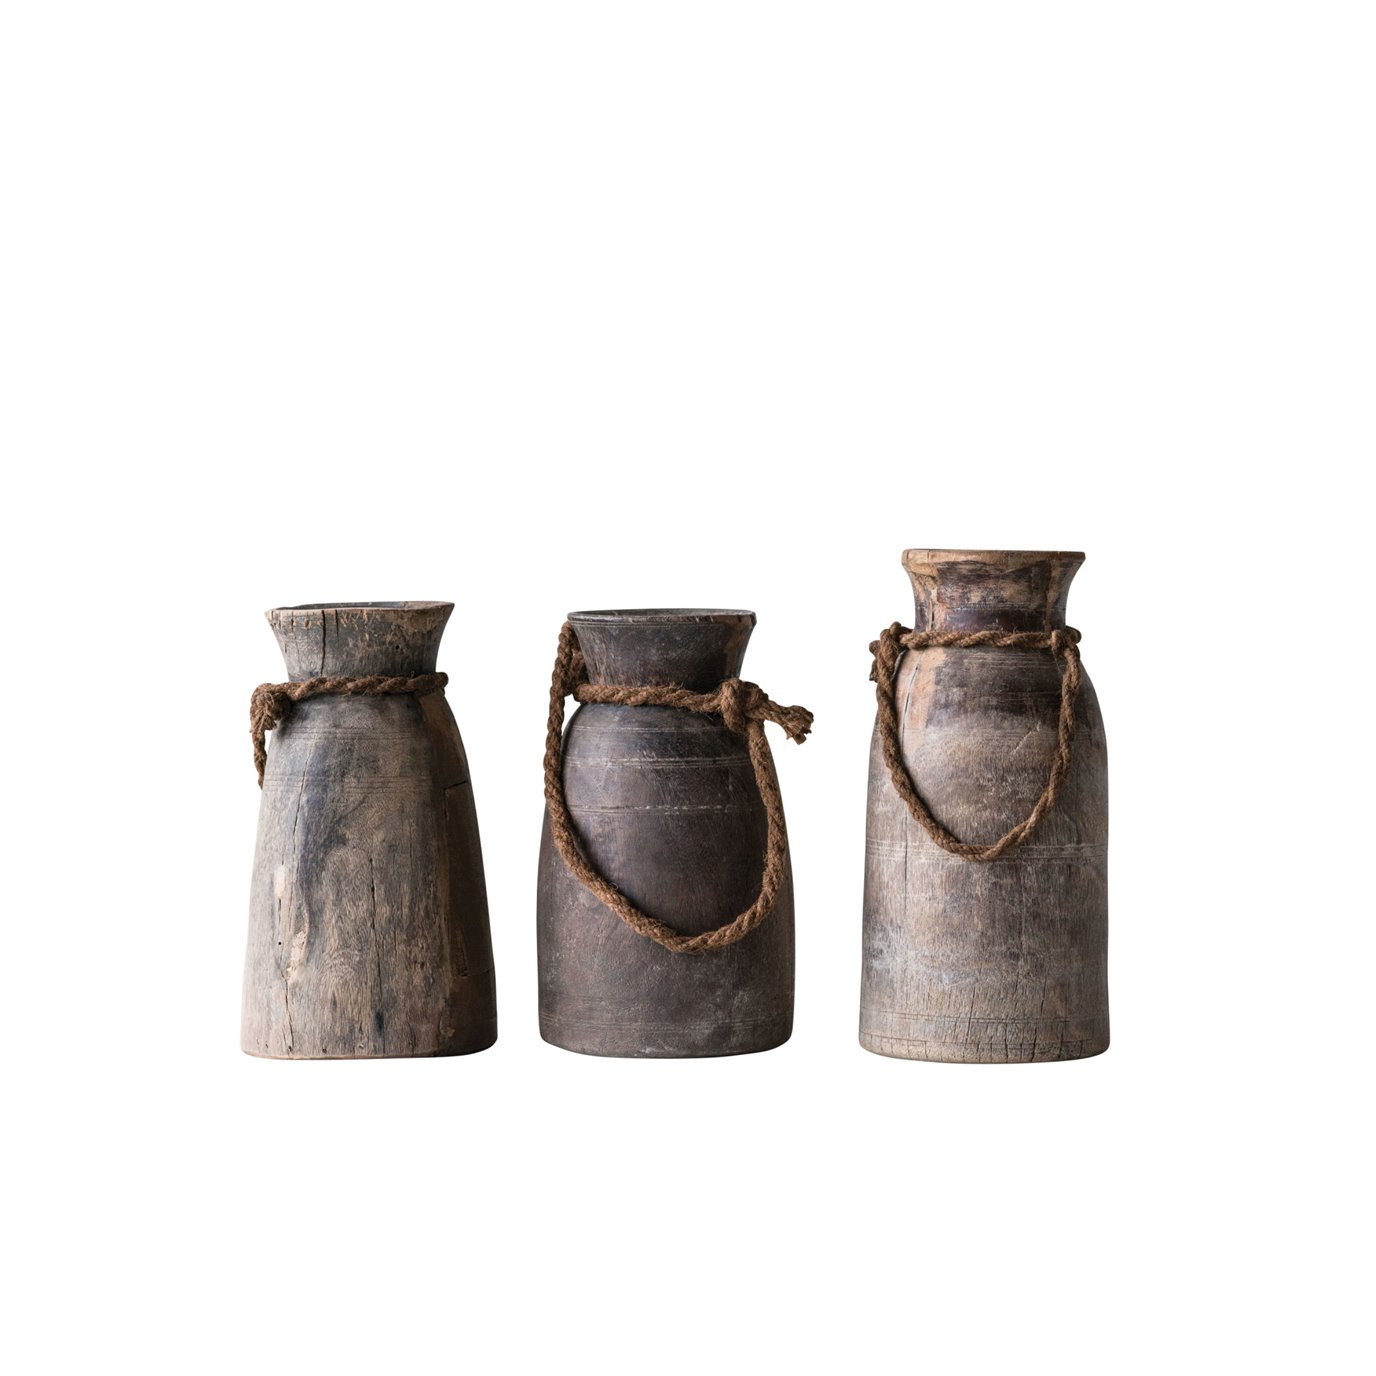 Small Found Decorative Wood Container with Rope (Each one will vary)